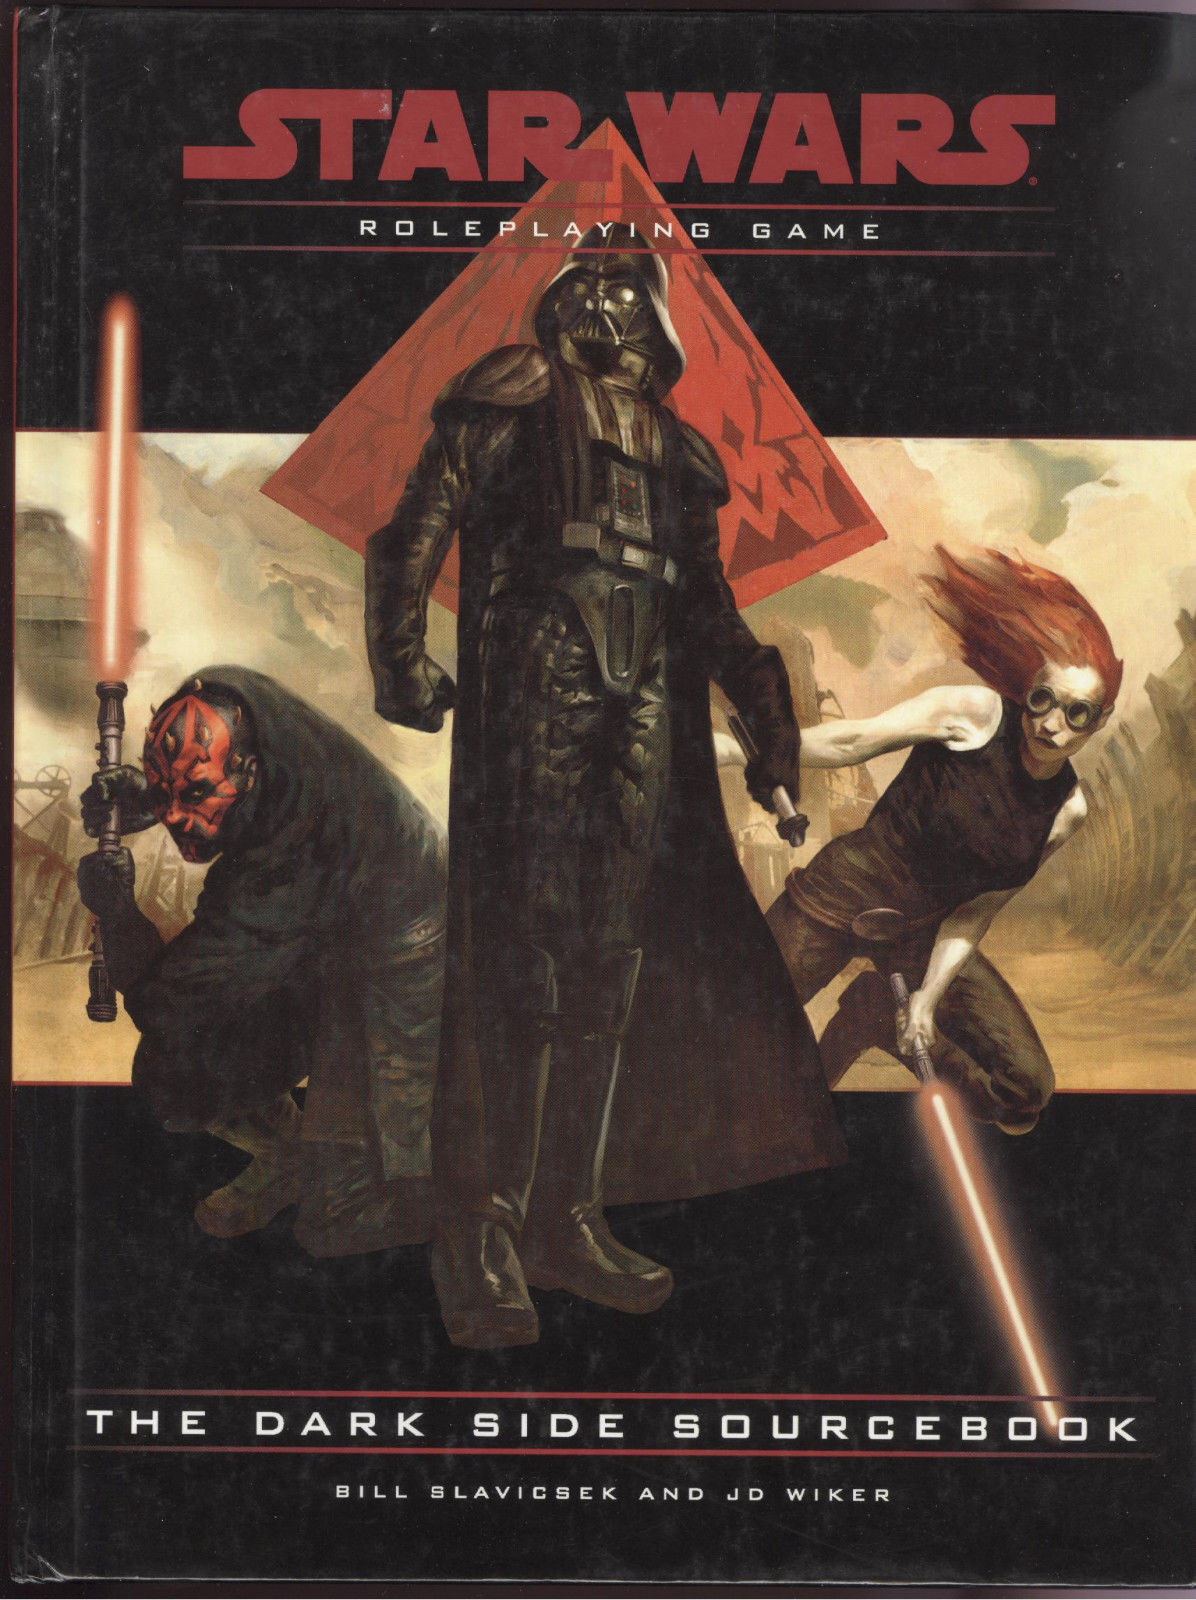 Star Wars RPG The Dark Side Sourcebook Bill Slavicsek JD Wiker SIGNED